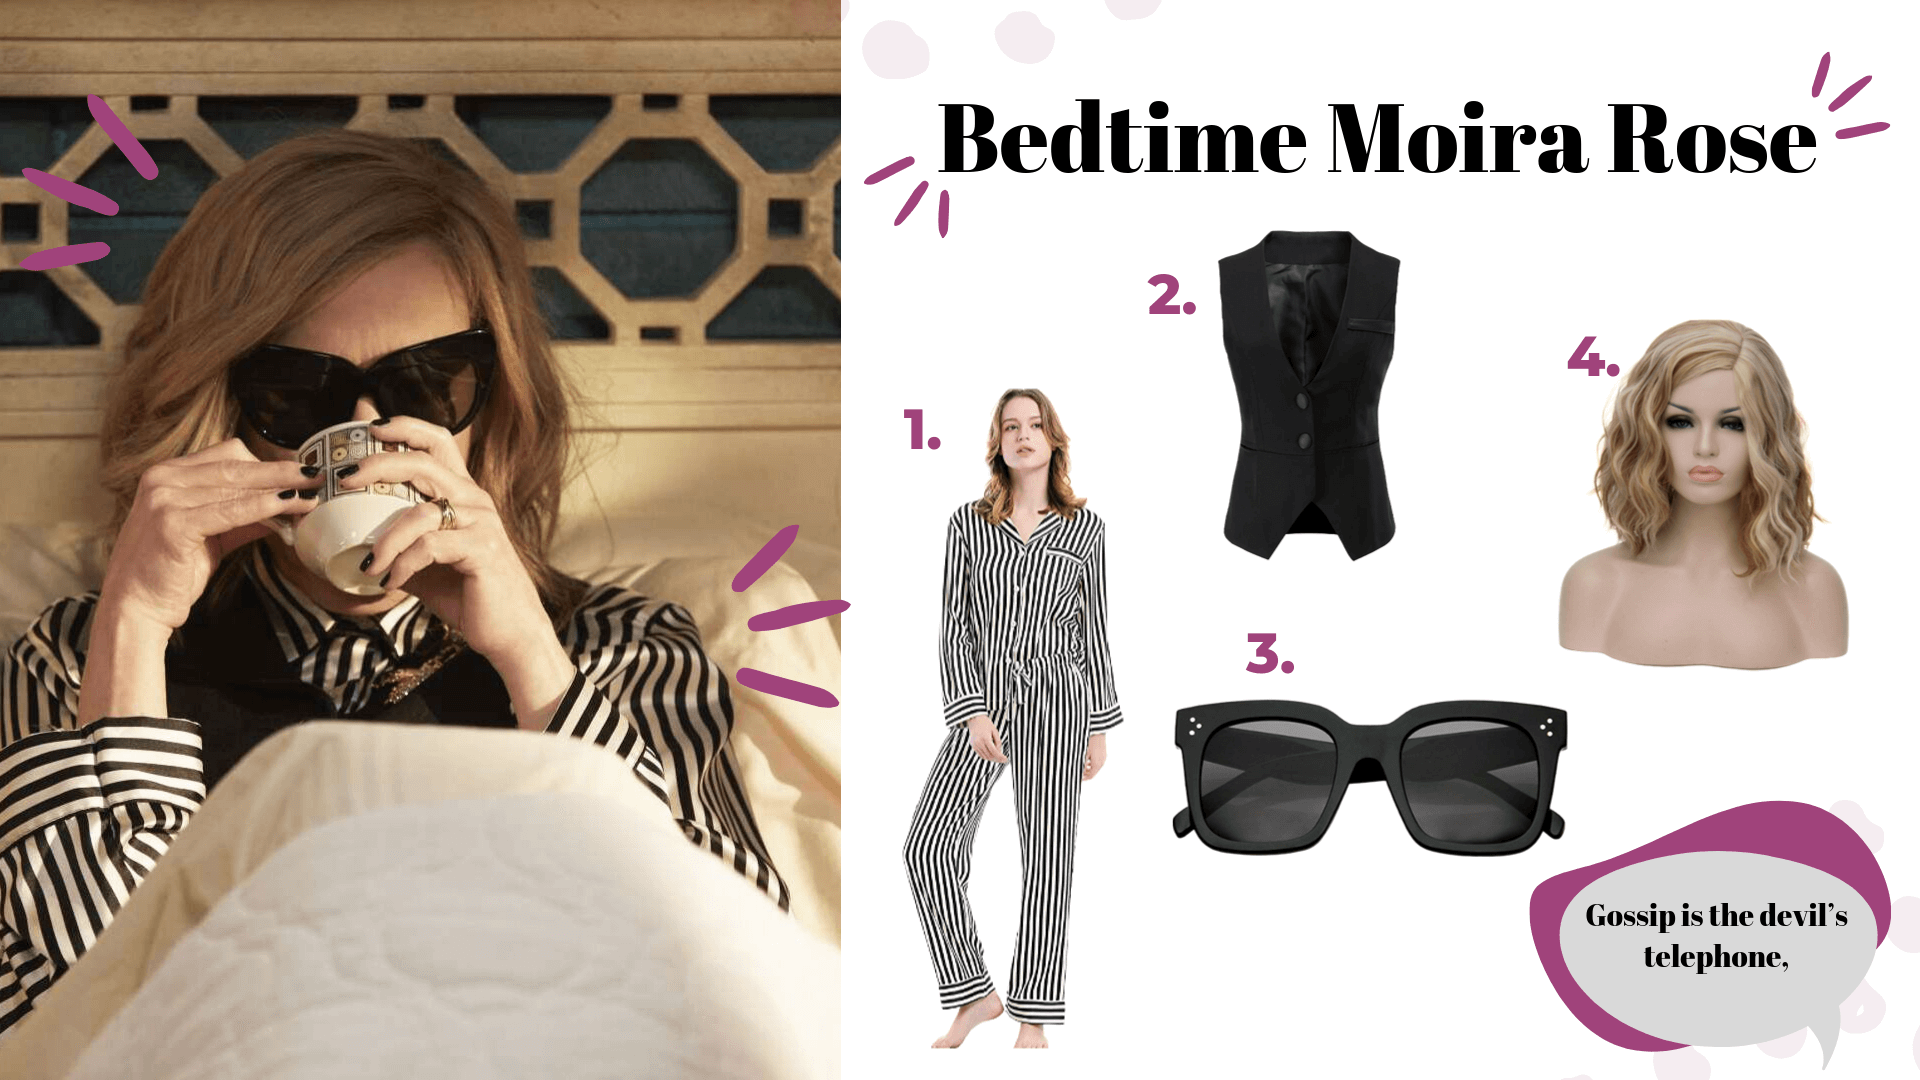 schitt's creek halloween costume moira rose bedtime